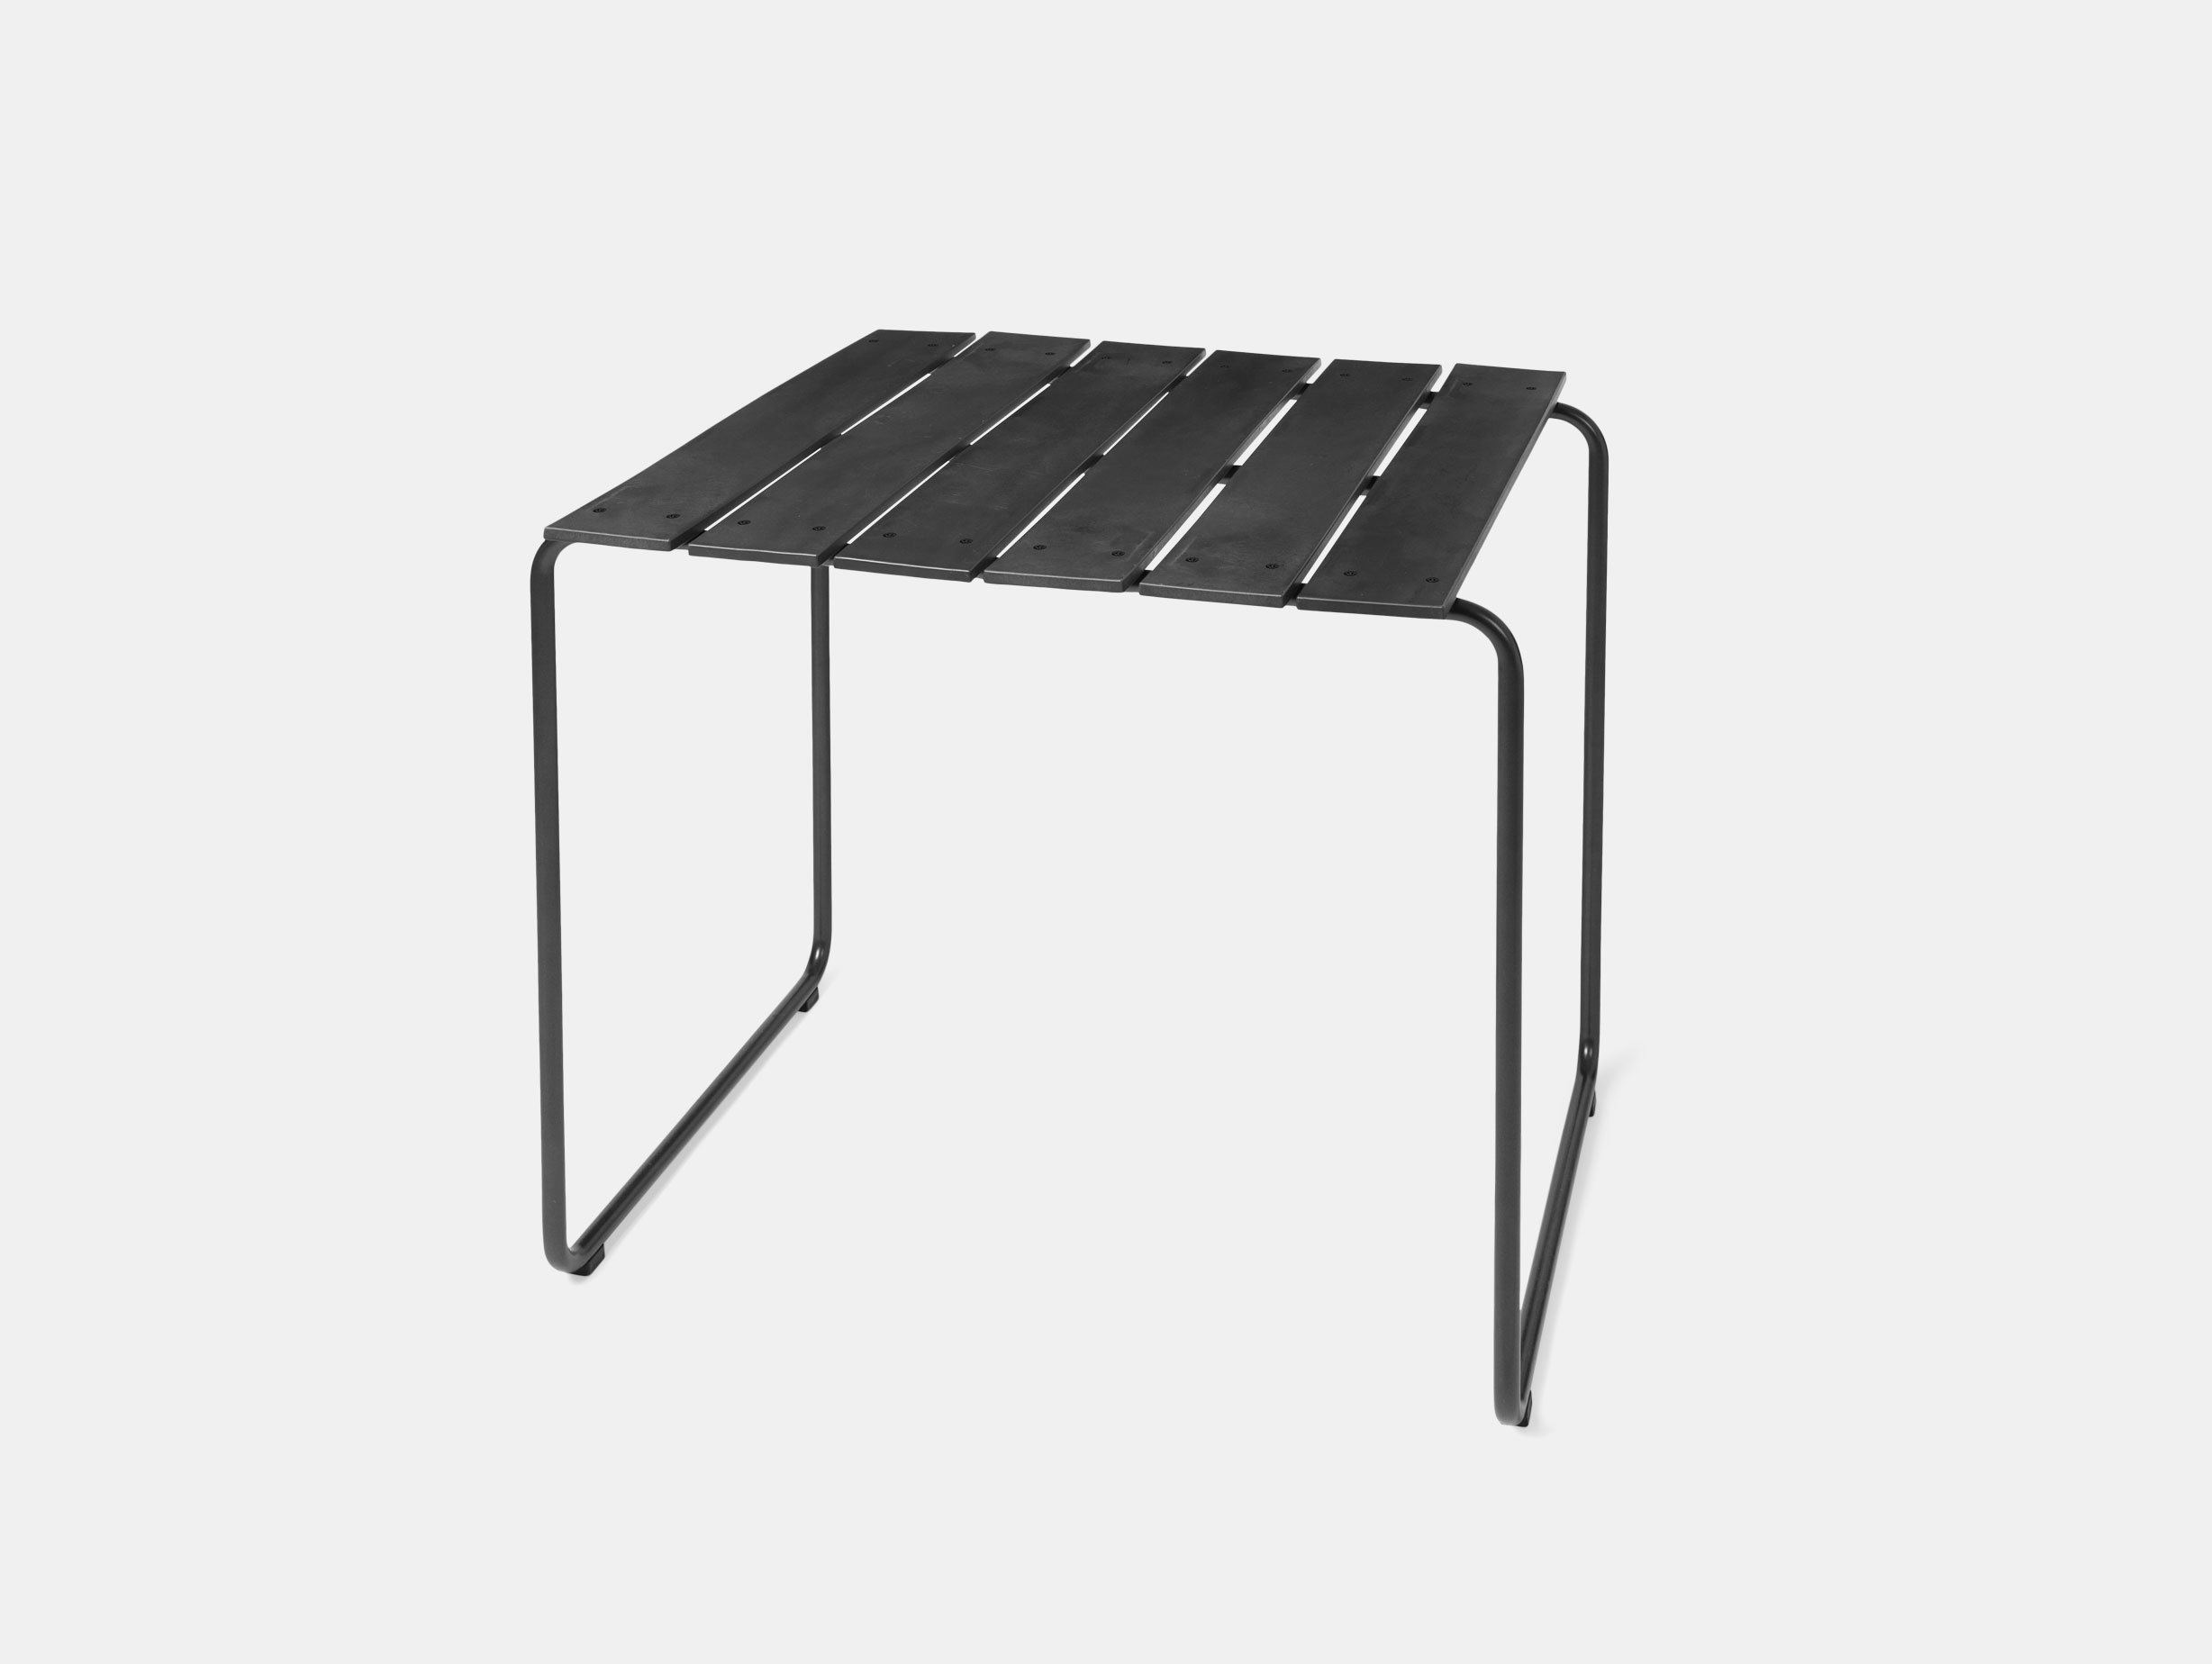 Mater Ocean Table 70X70 Black Nanna Ditzel